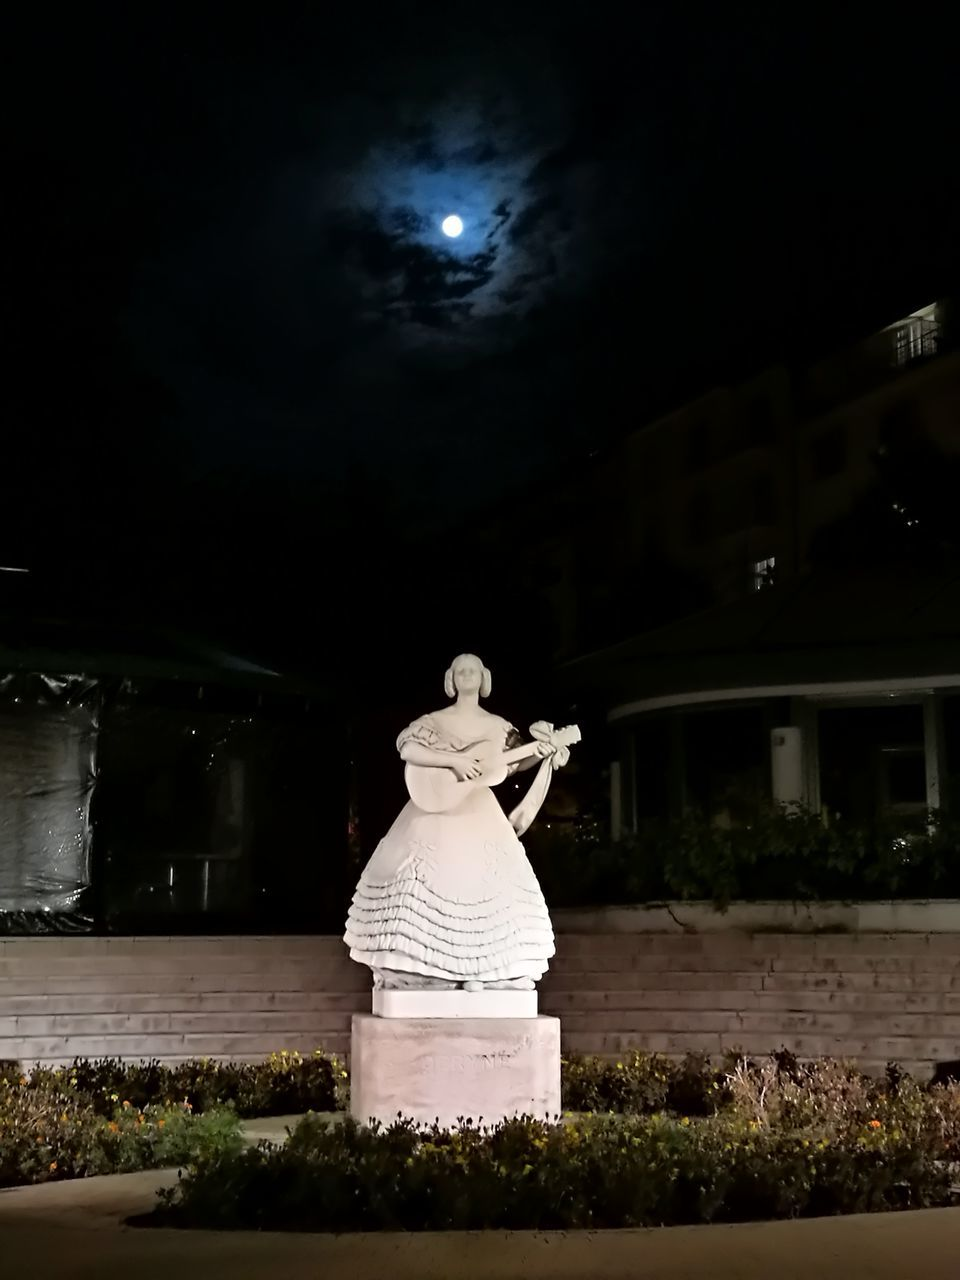 sculpture, art and craft, human representation, statue, representation, night, creativity, male likeness, plant, women, nature, architecture, female likeness, rear view, real people, built structure, craft, full length